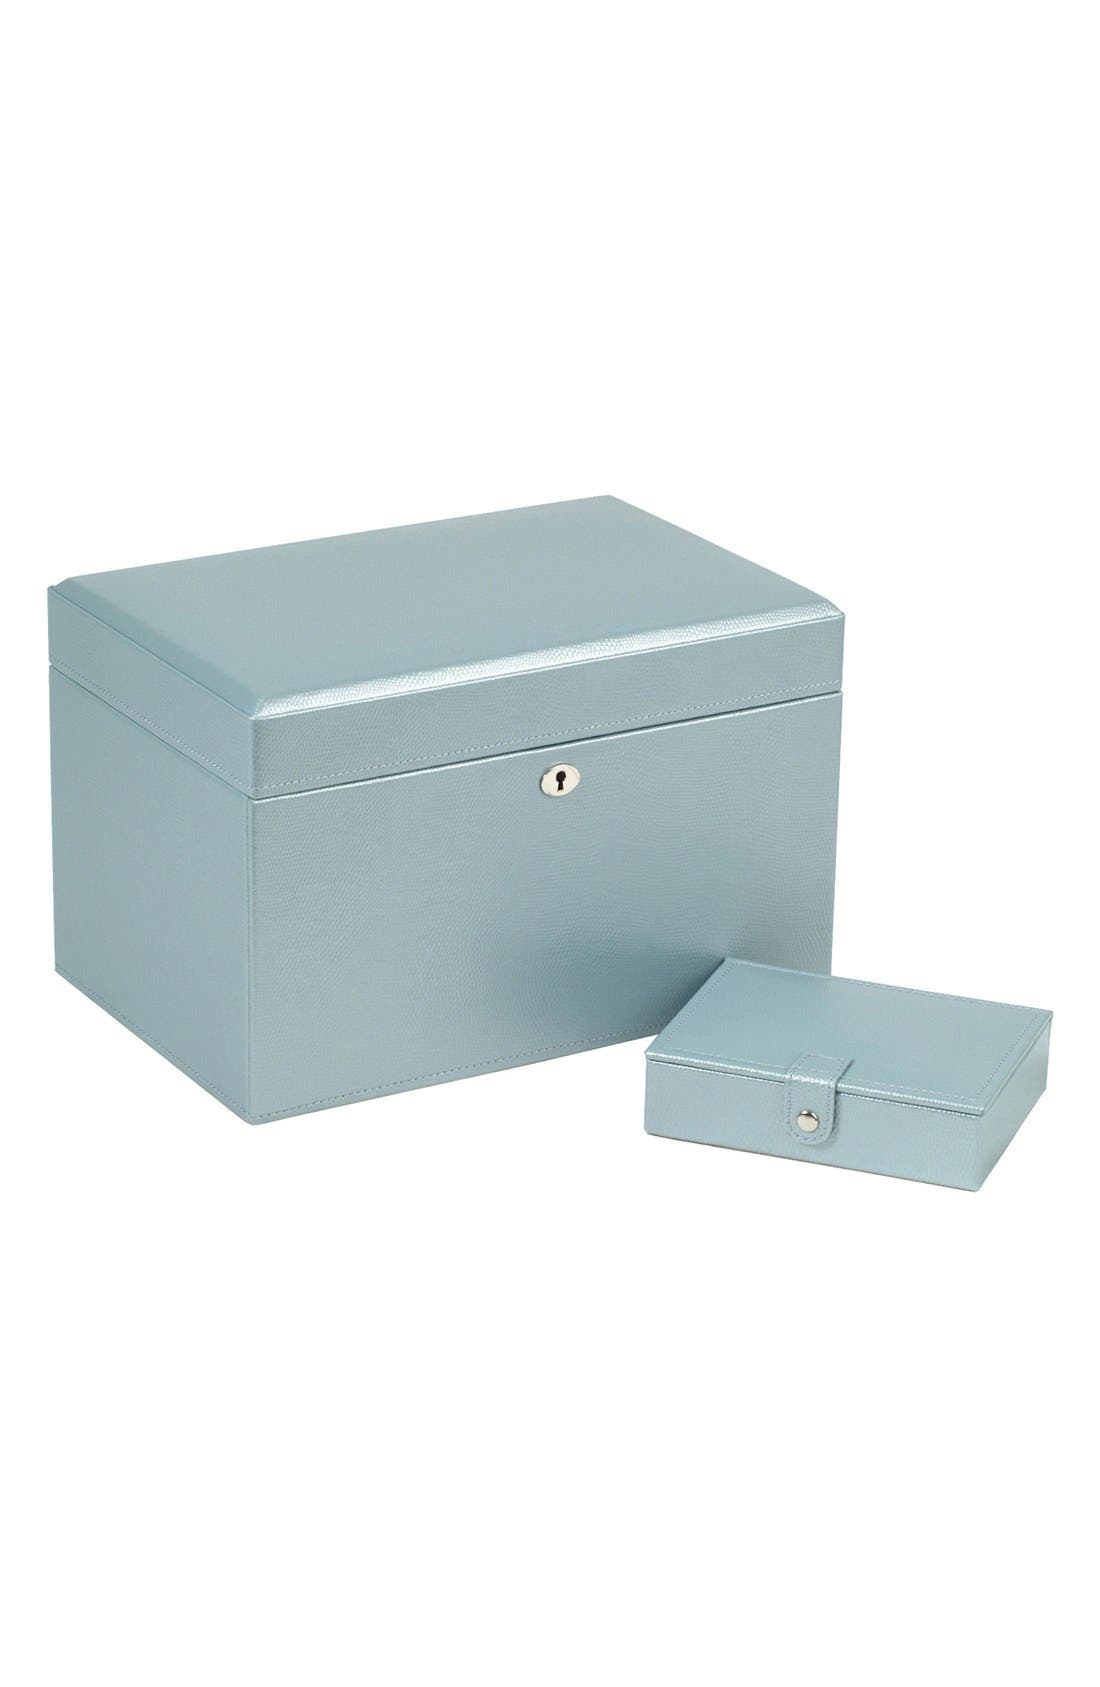 London Medium Jewelry Box,                         Main,                         color, ICE BLUE